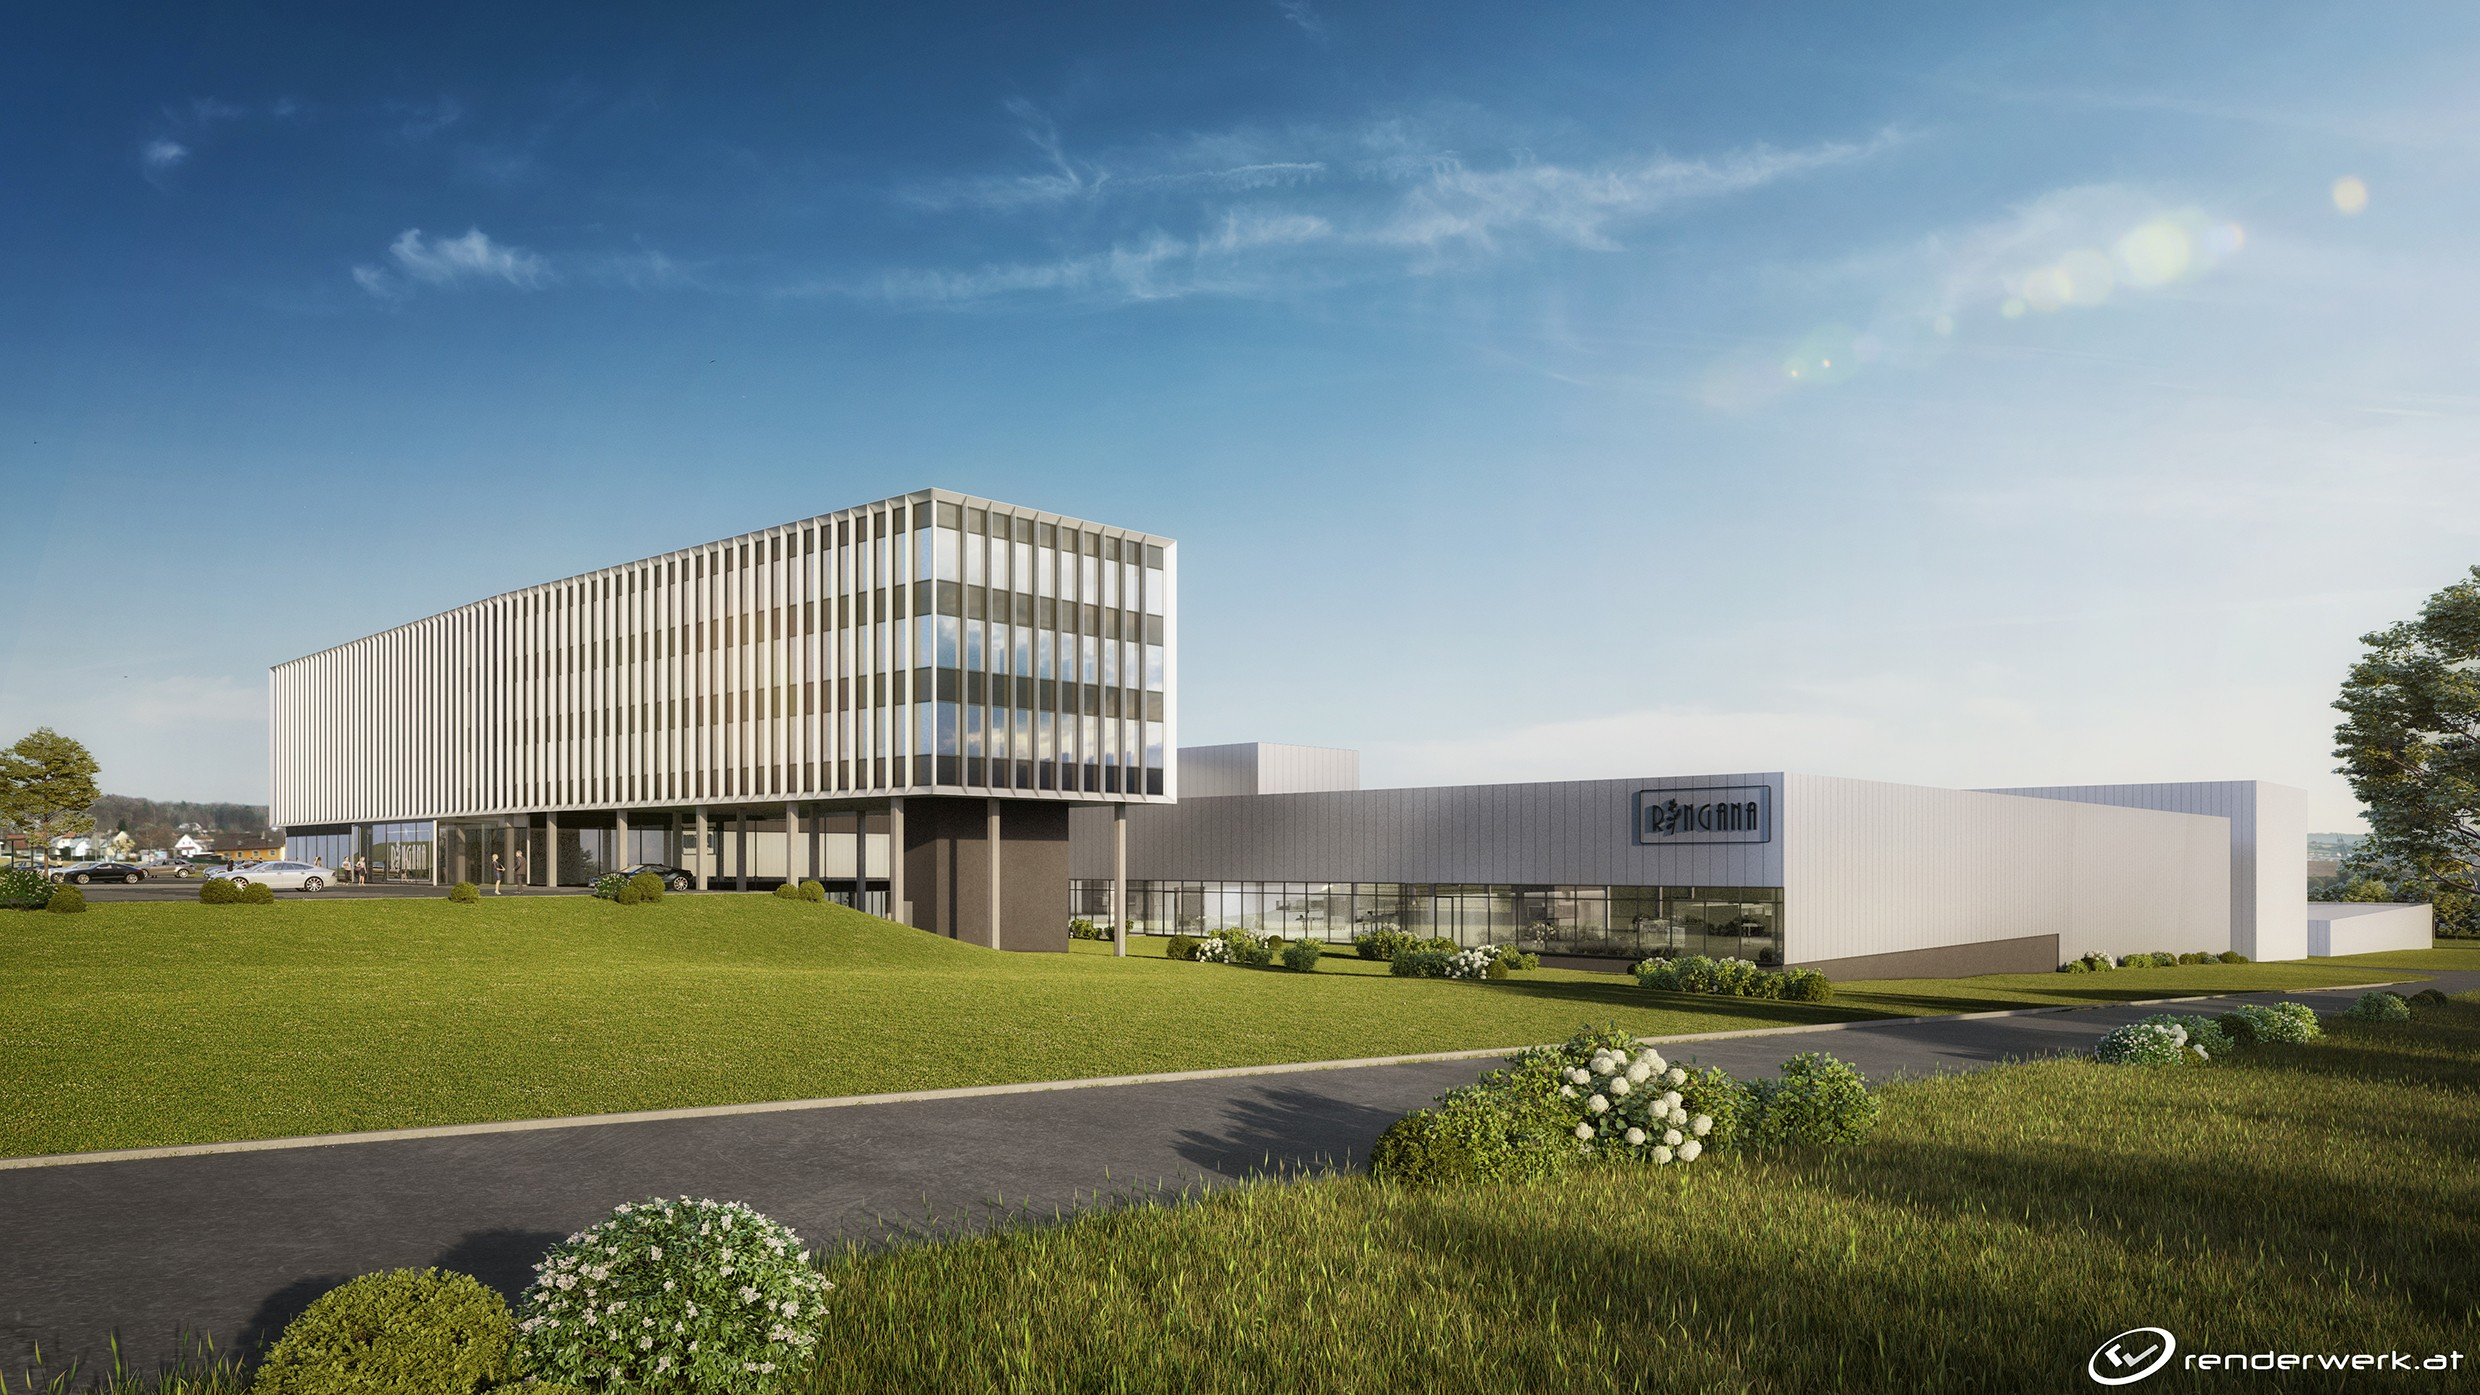 Integrally designed with BIM by ATP: RINGANA's new facility<br><span class='image_copyright'>ATP</span><br>